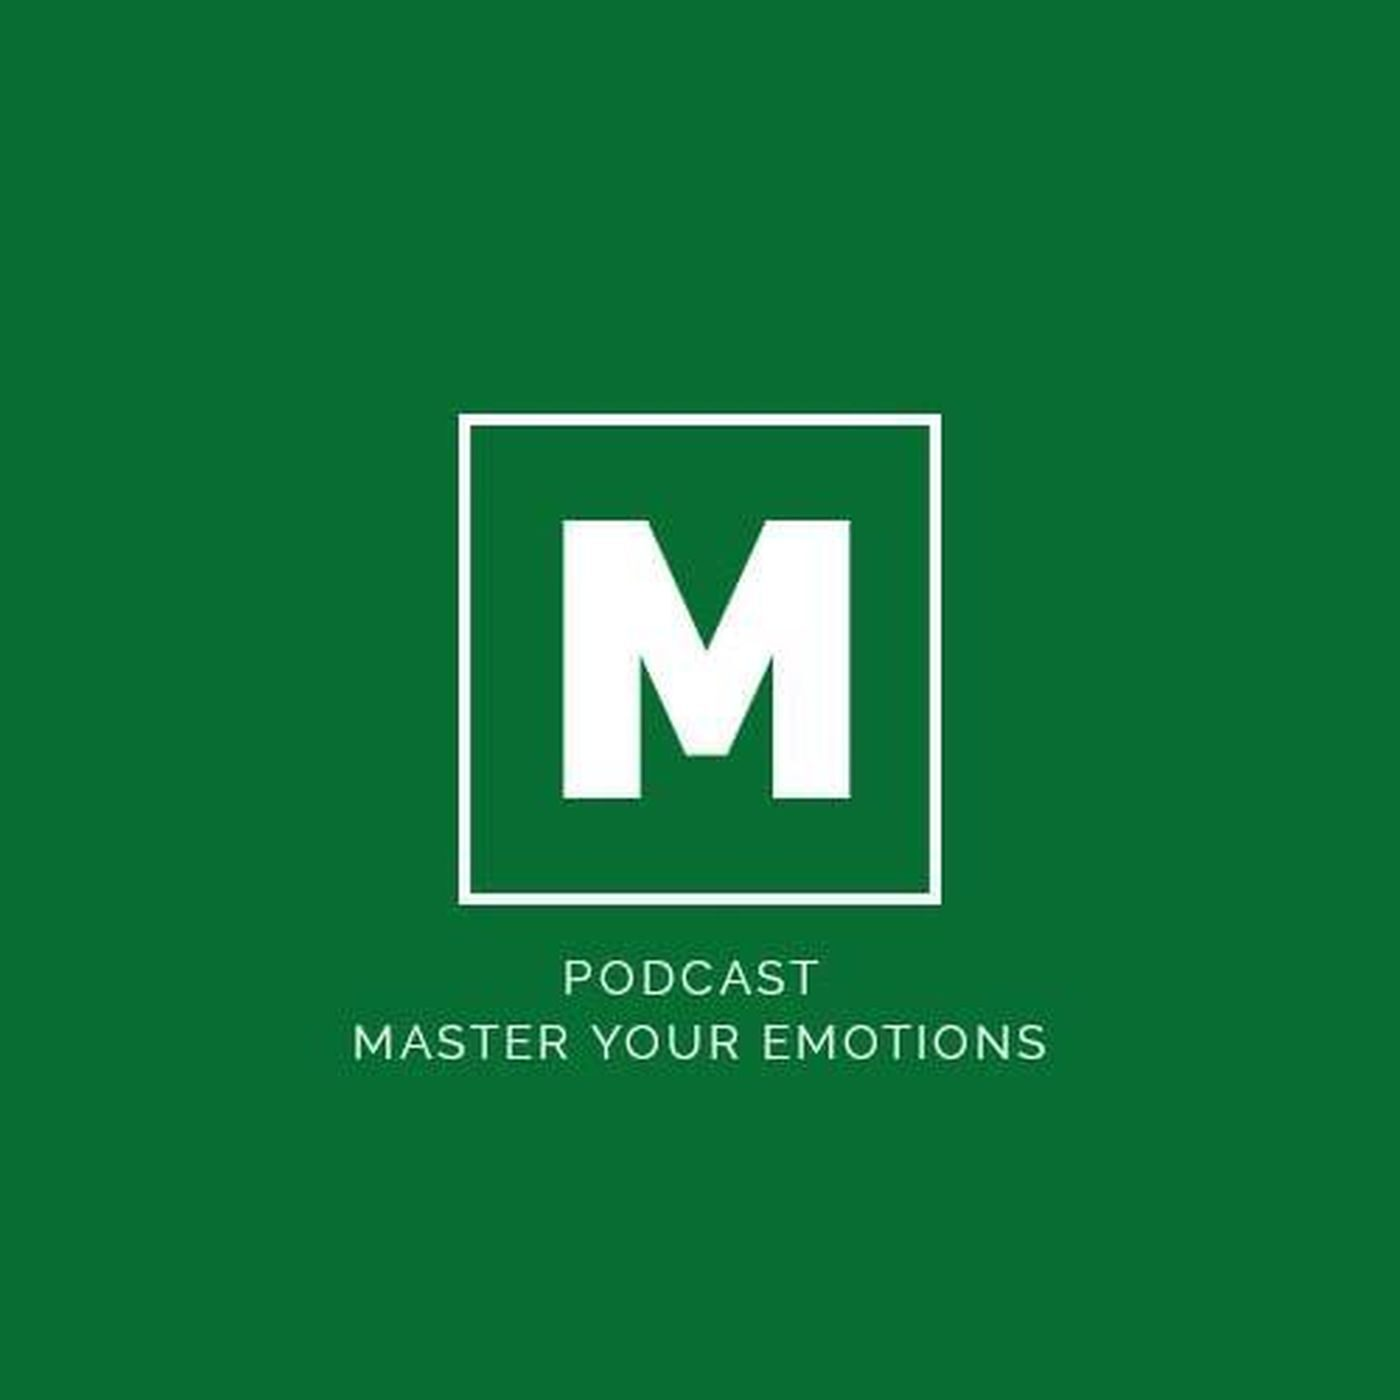 Podcast Master Your Emotions